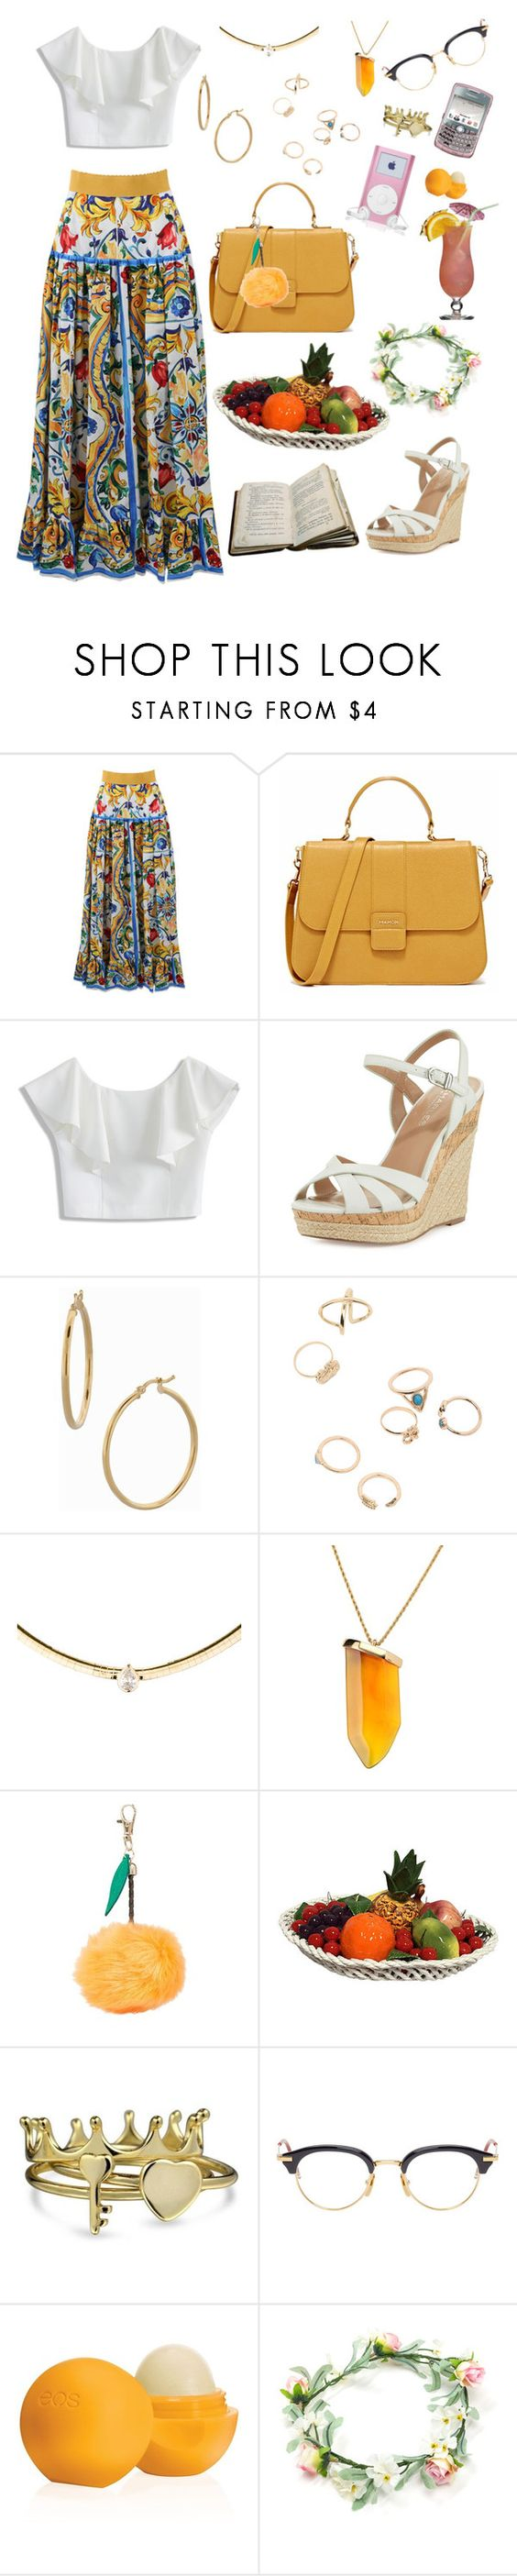 """""""Floral Princess"""" by tiffanydgonzalez on Polyvore featuring Dolce&Gabbana, Chicwish, Charles by Charles David, Bony Levy, Kenneth Jay Lane, Bling Jewelry, Thom Browne and Eos"""